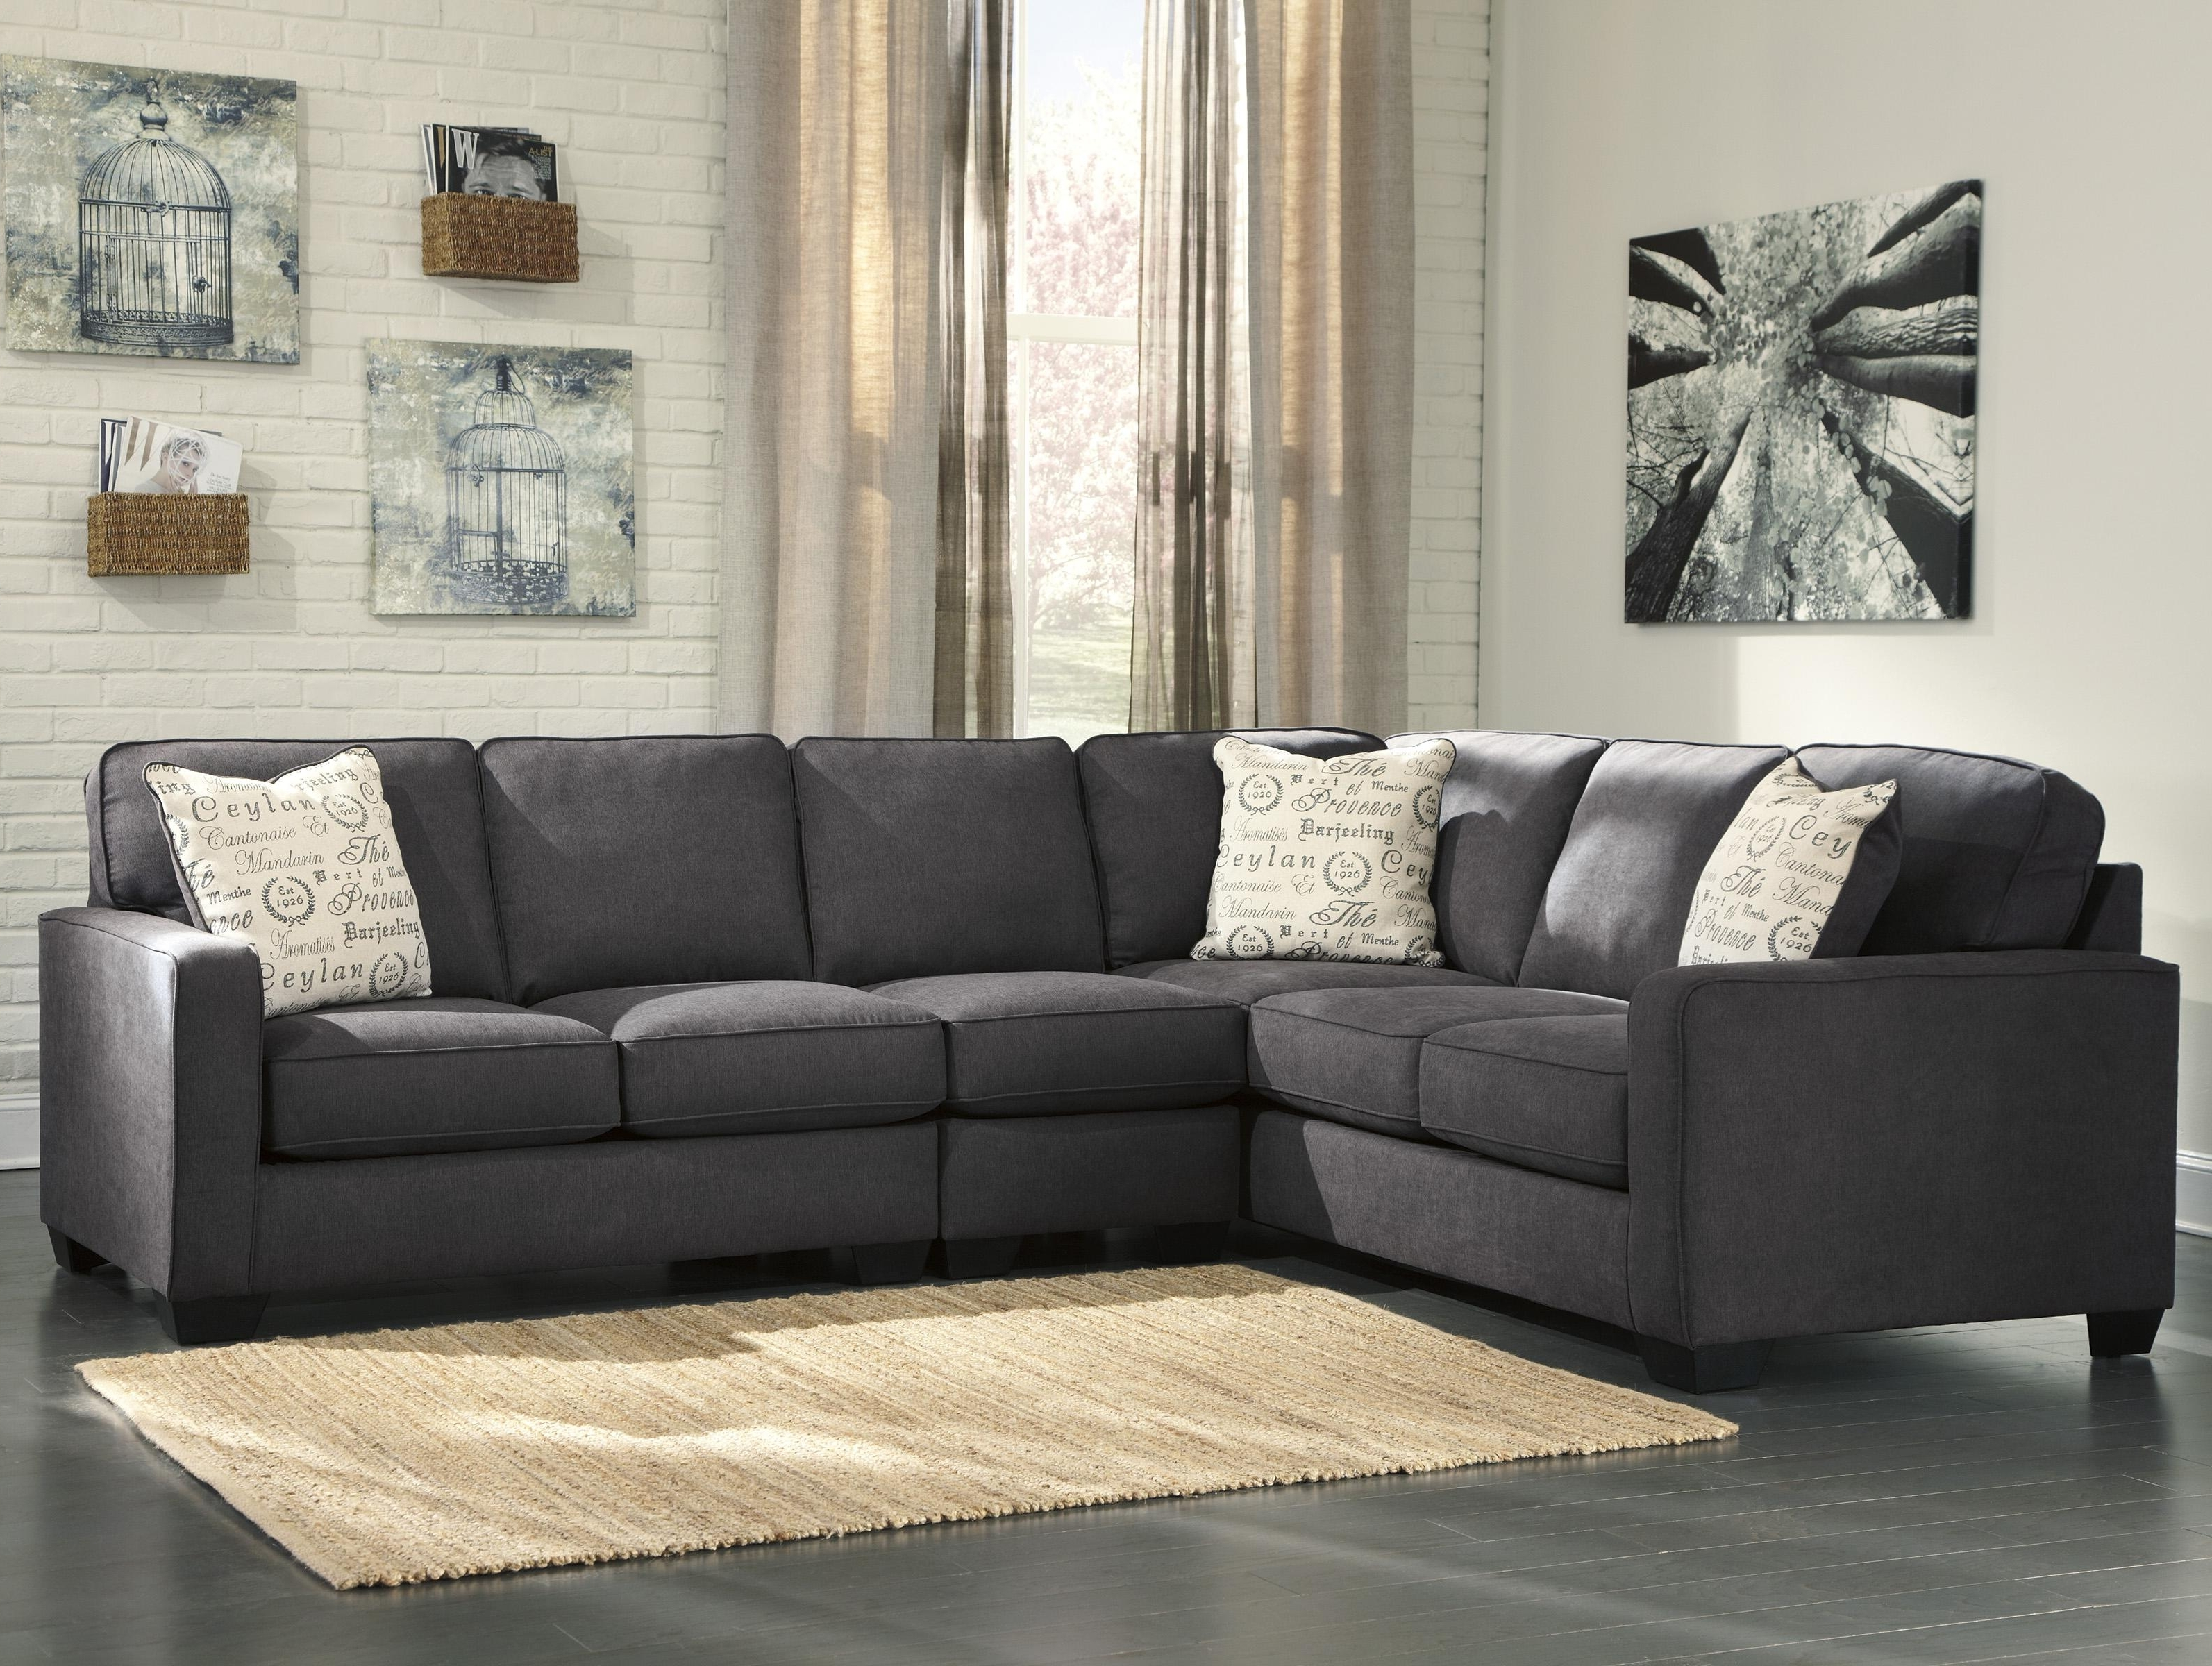 Fashionable Ashley Signature Design Alenya – Charcoal 3 Piece Sectional With In Sectional Sofas At Ashley (View 4 of 20)